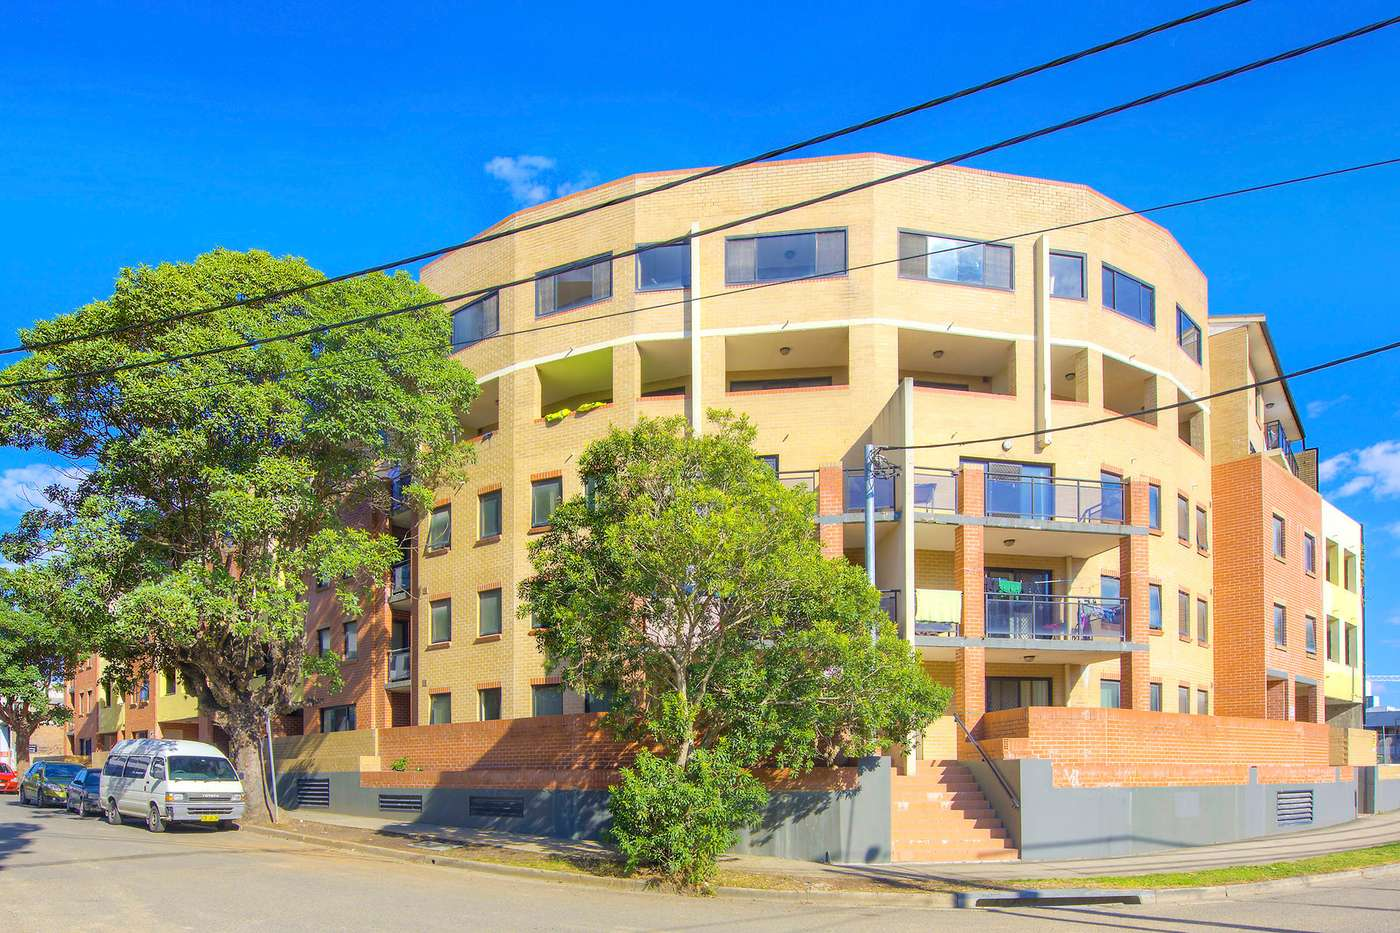 Main view of Homely unit listing, 23/2-10 Powell Street, Homebush, NSW 2140